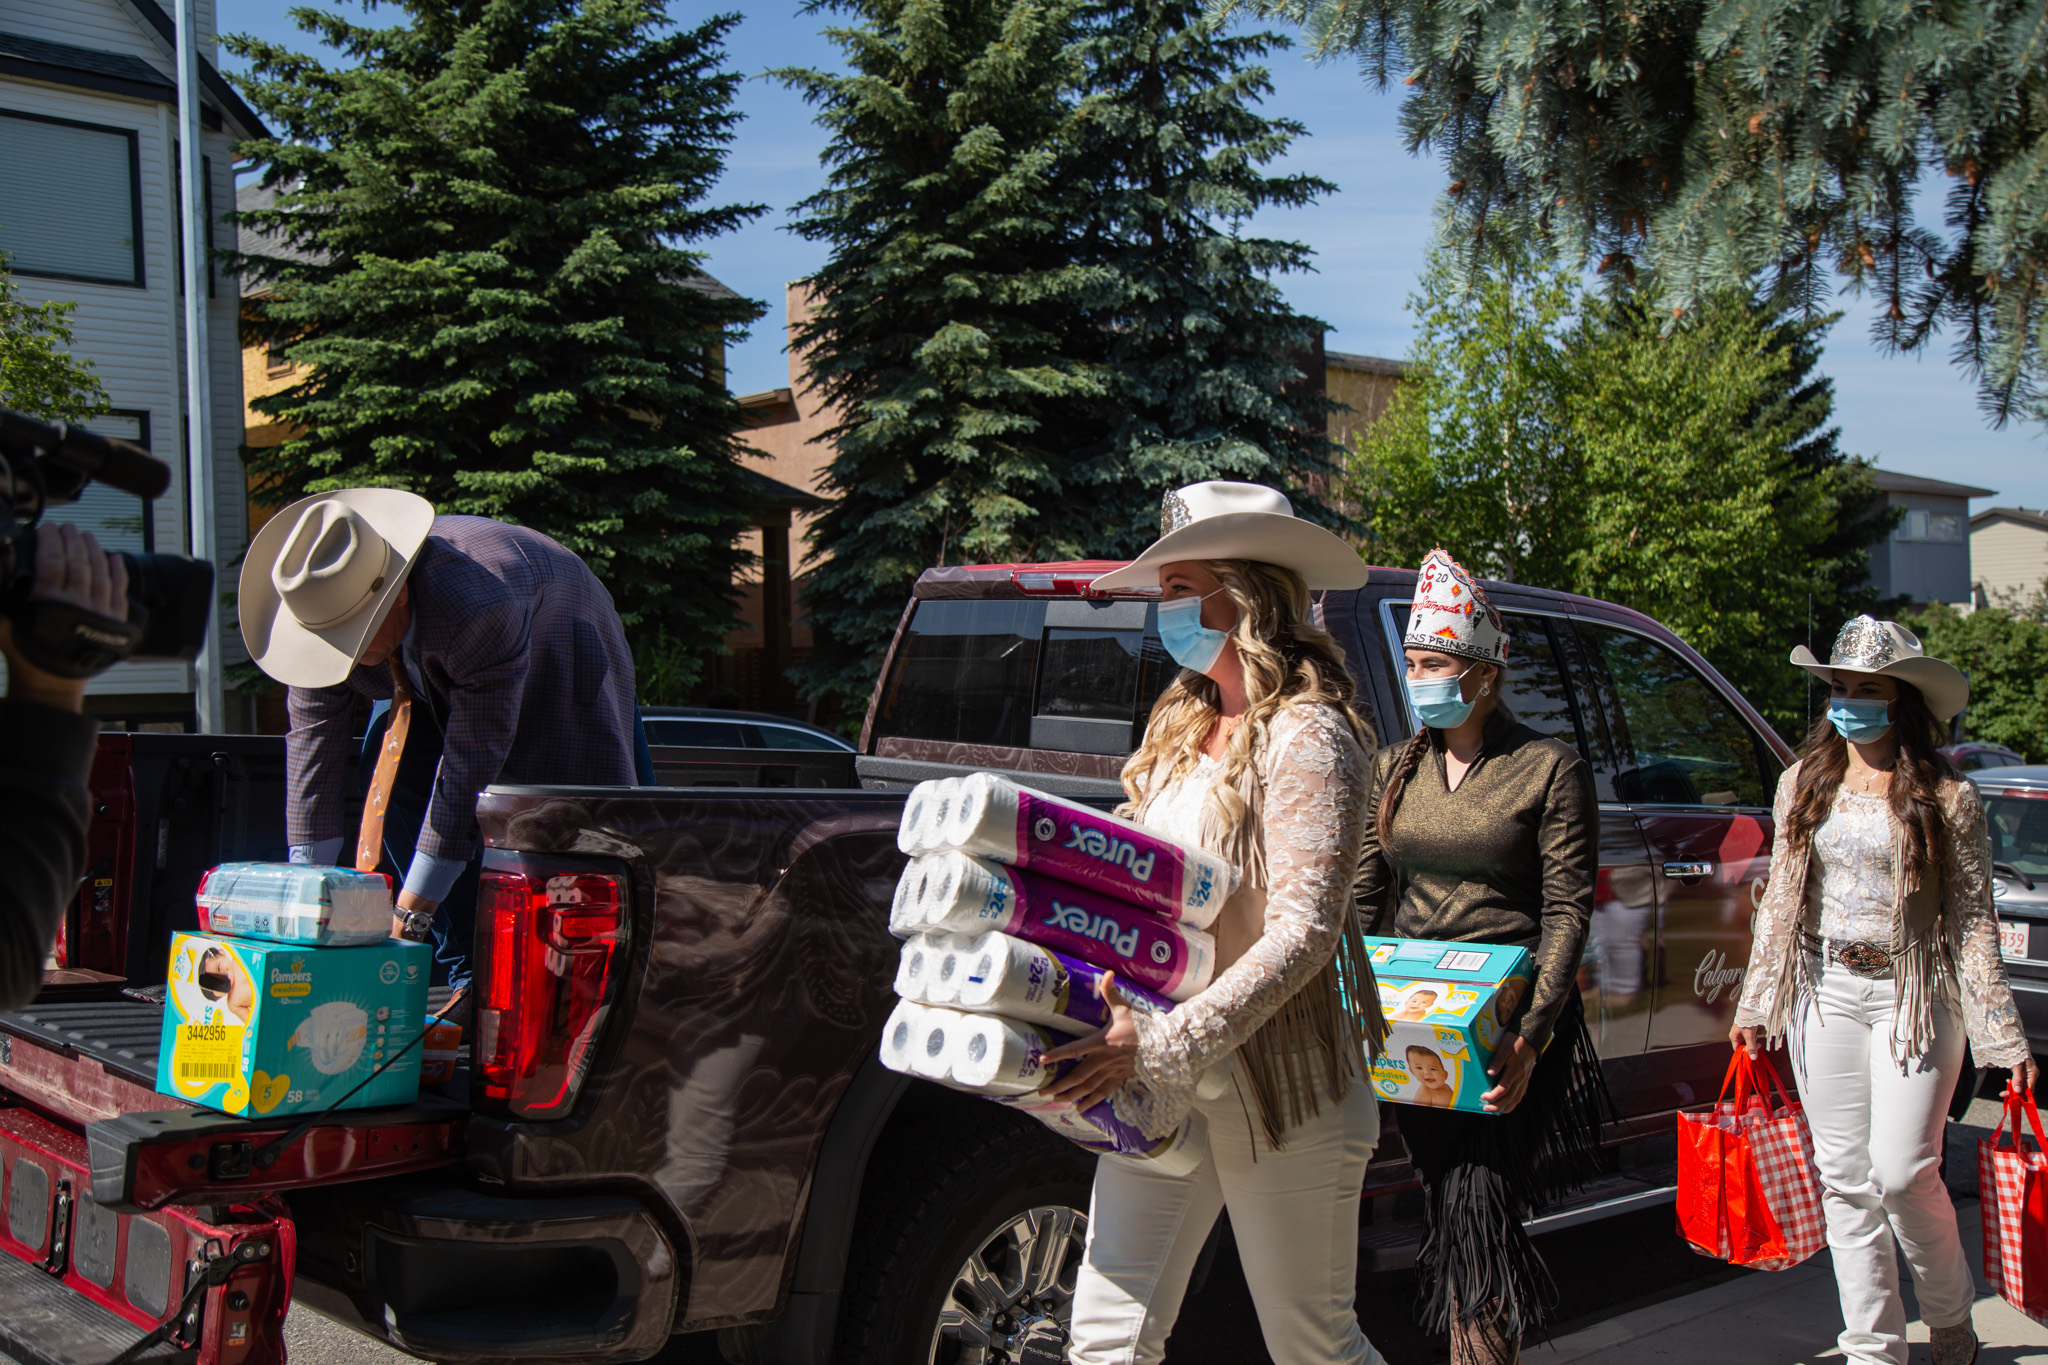 Group shot of the Stampede Princess' loding donation items and toilet paper into the back of a truck on a sunny day